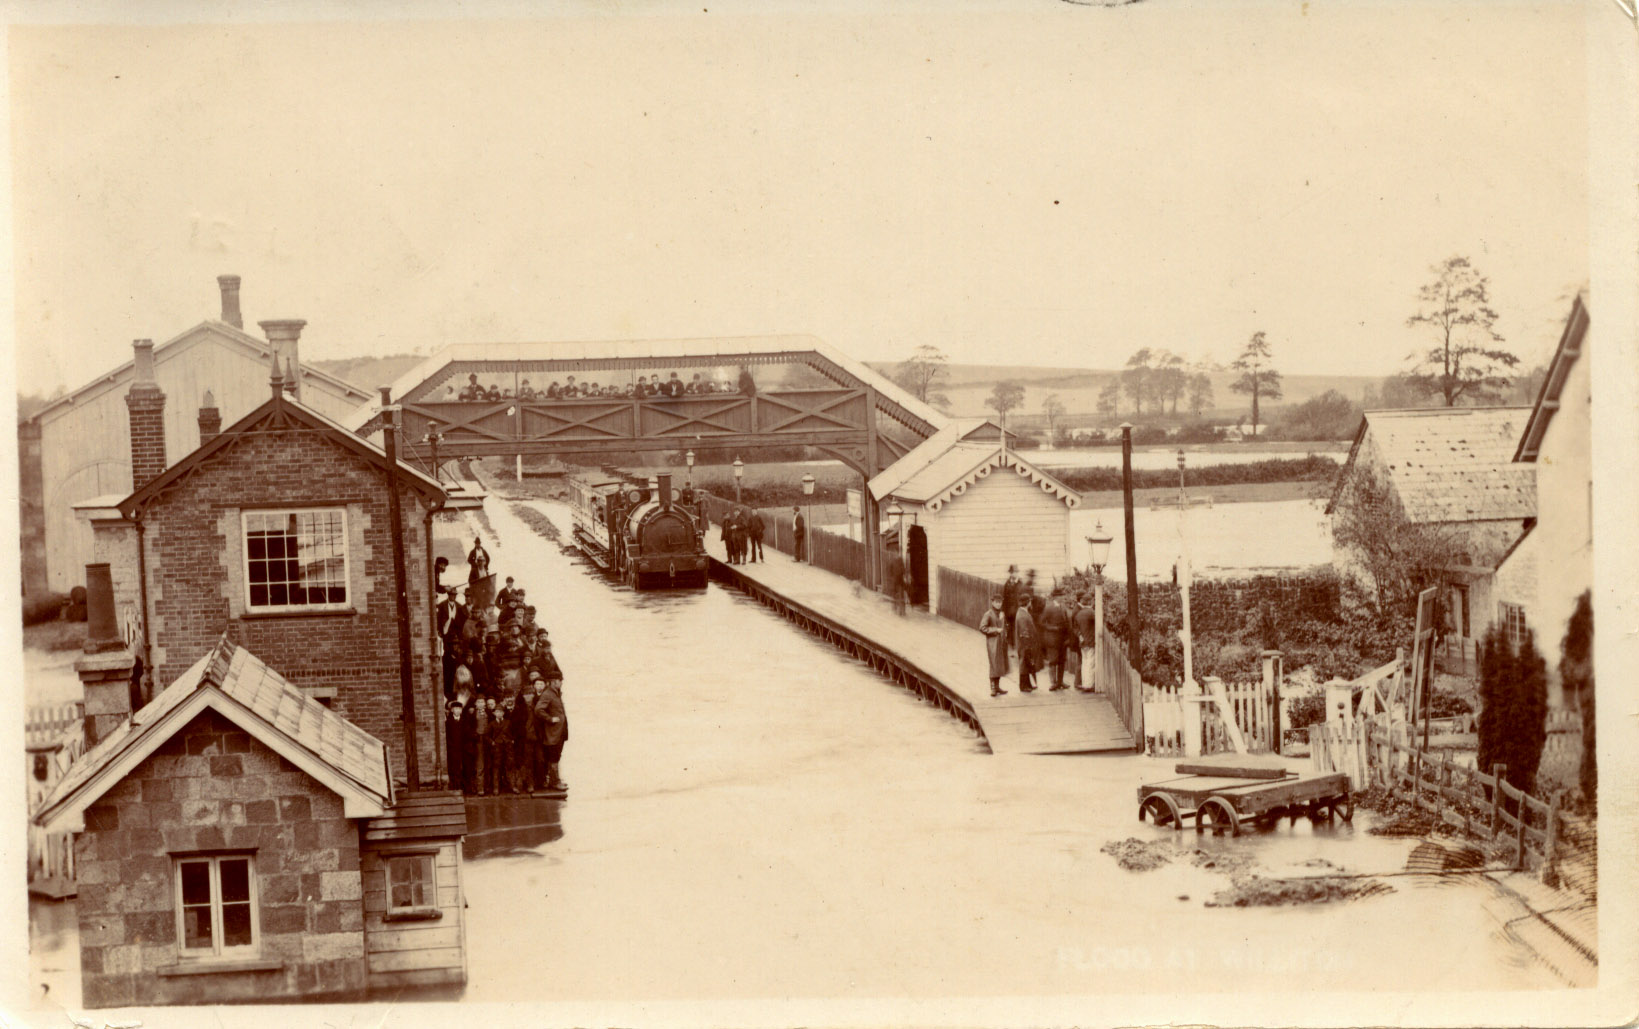 1877 - Williton Station Flooding. ©The John Alsop Collection